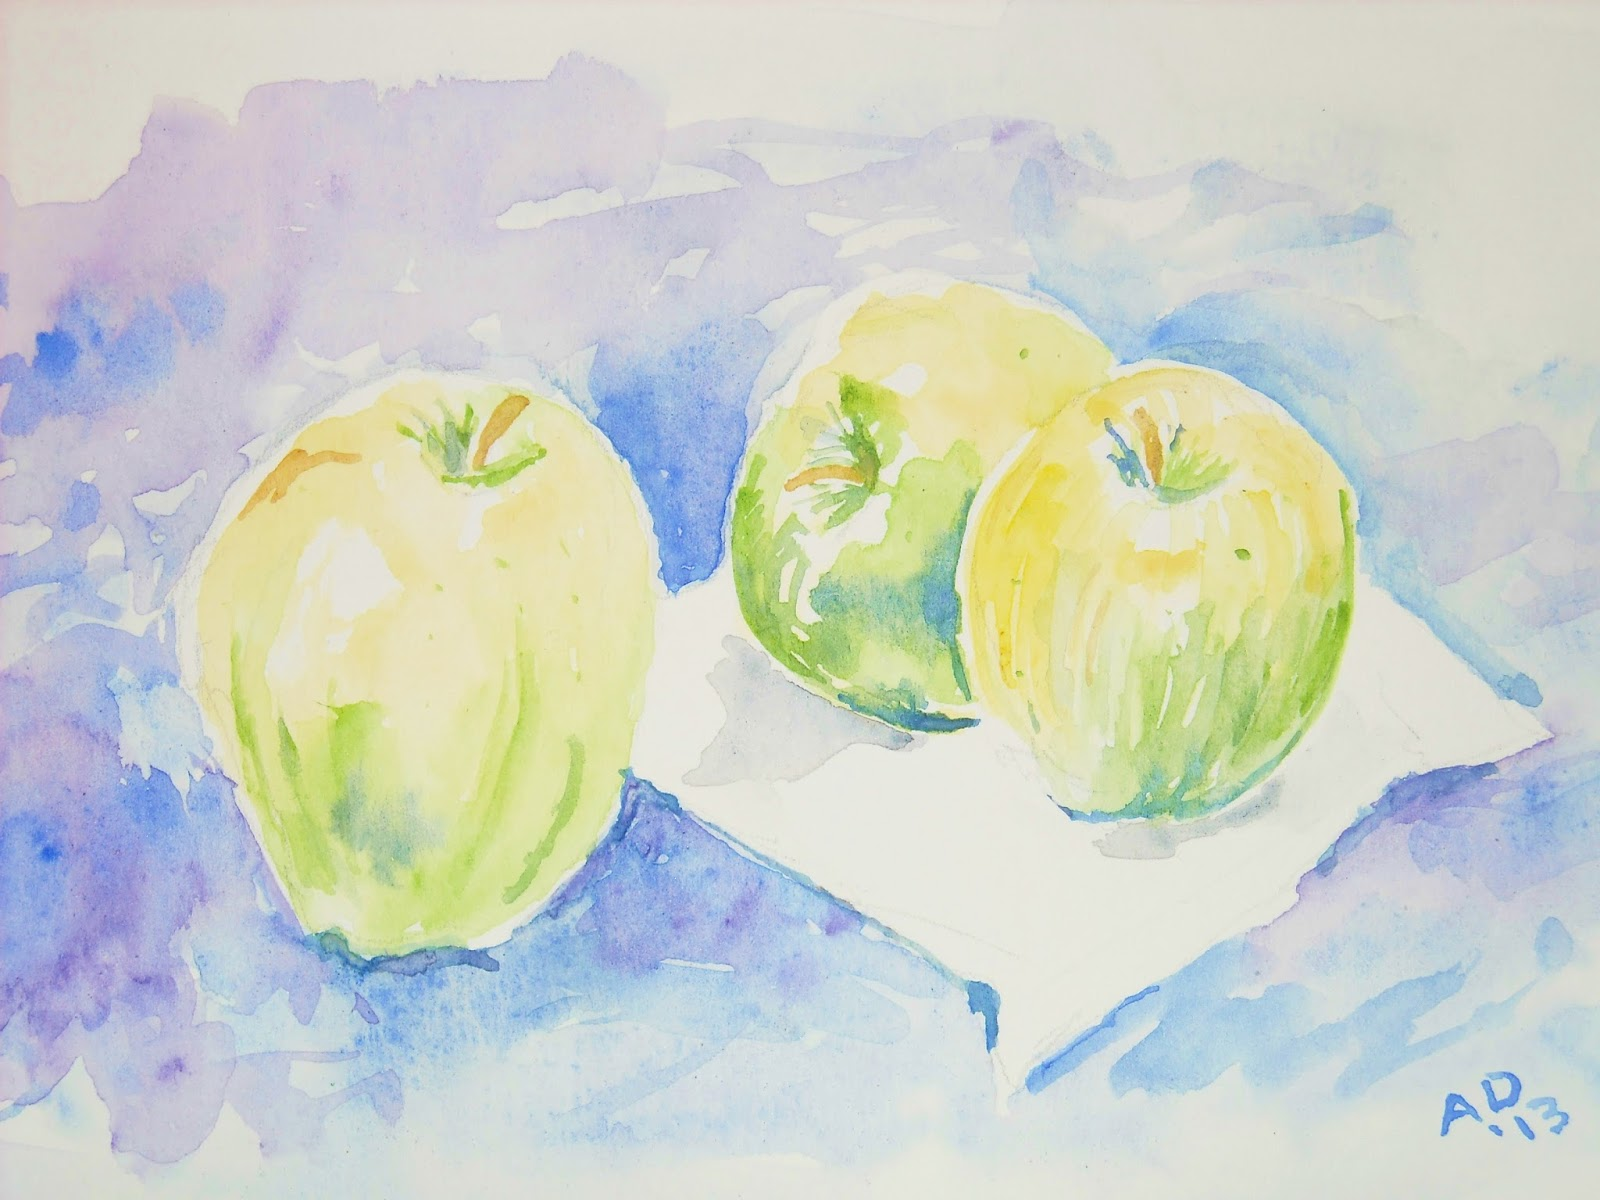 Artist Adron Watercolor Sketch Of Three Apples